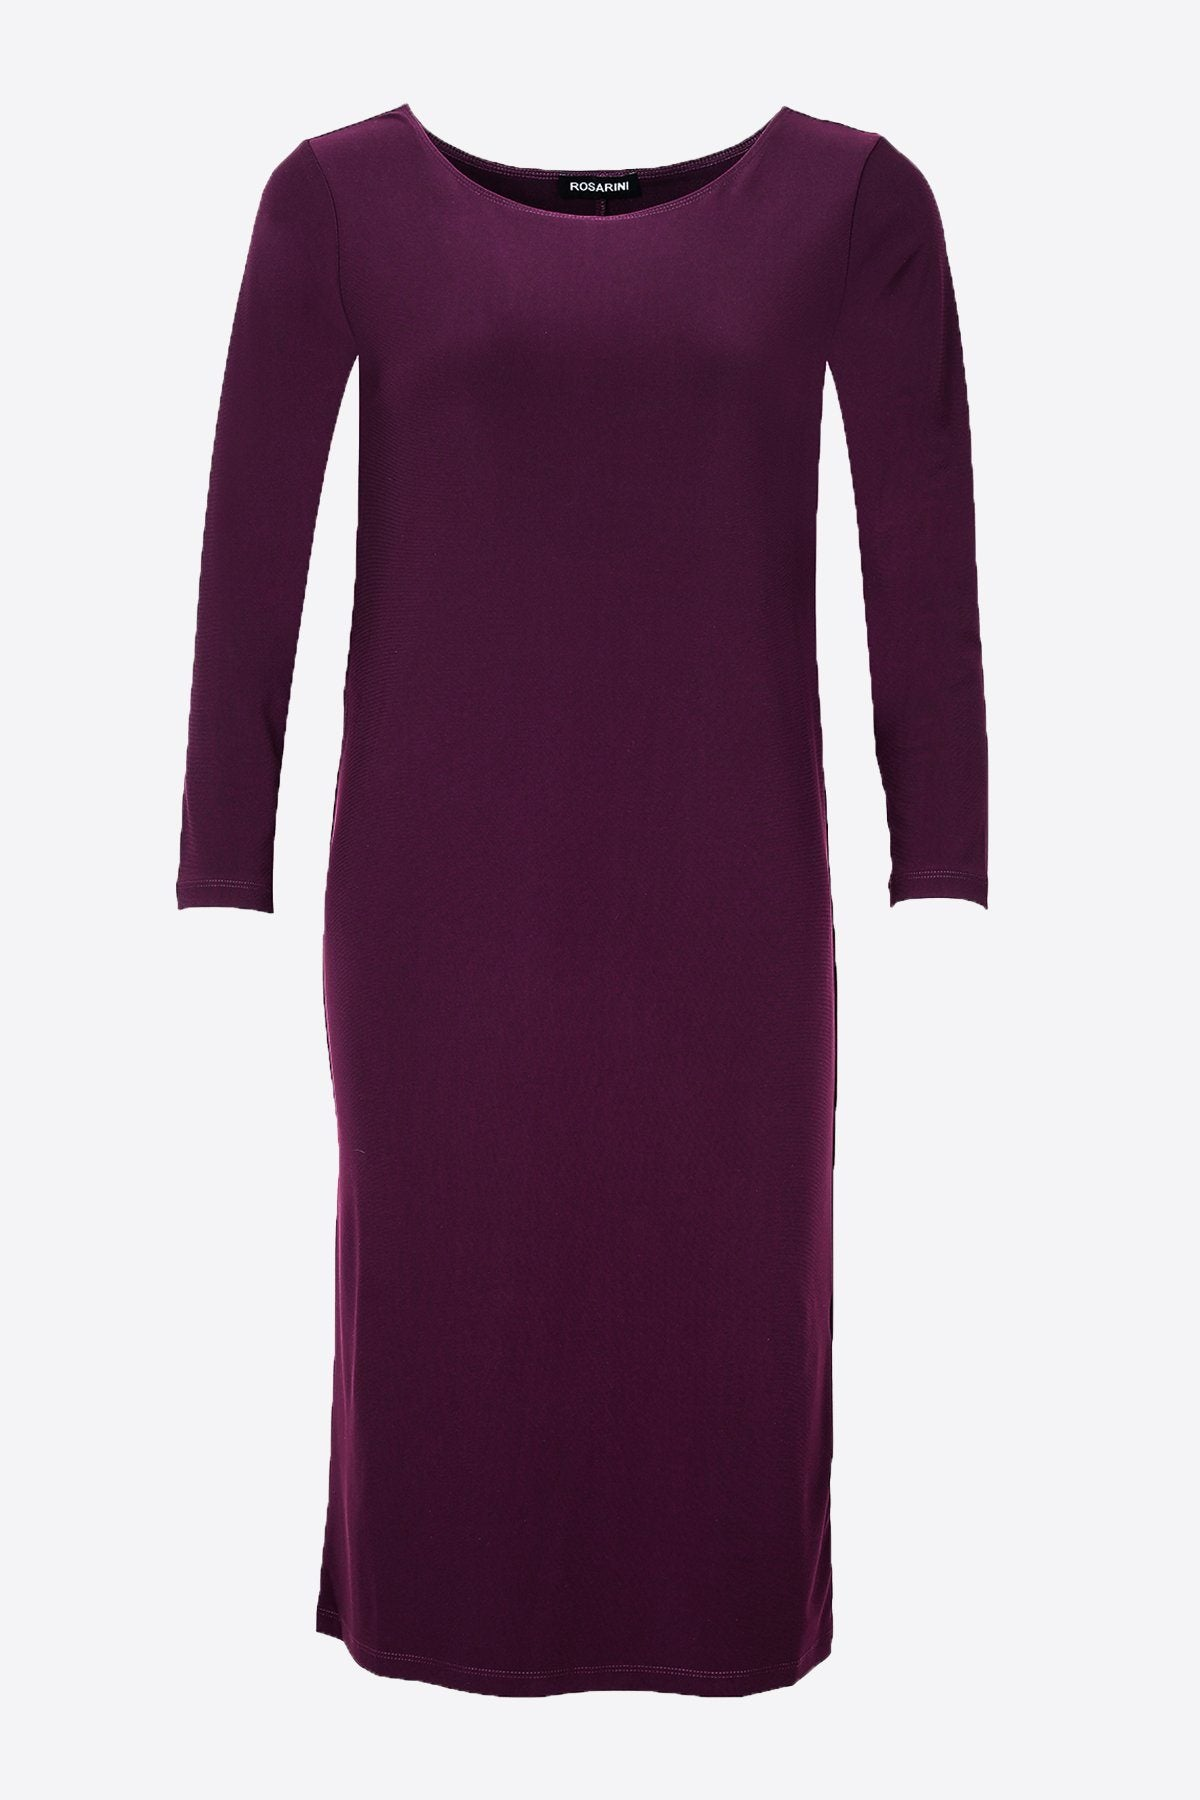 PLUS SIZE MRS PARK DRESS WINE